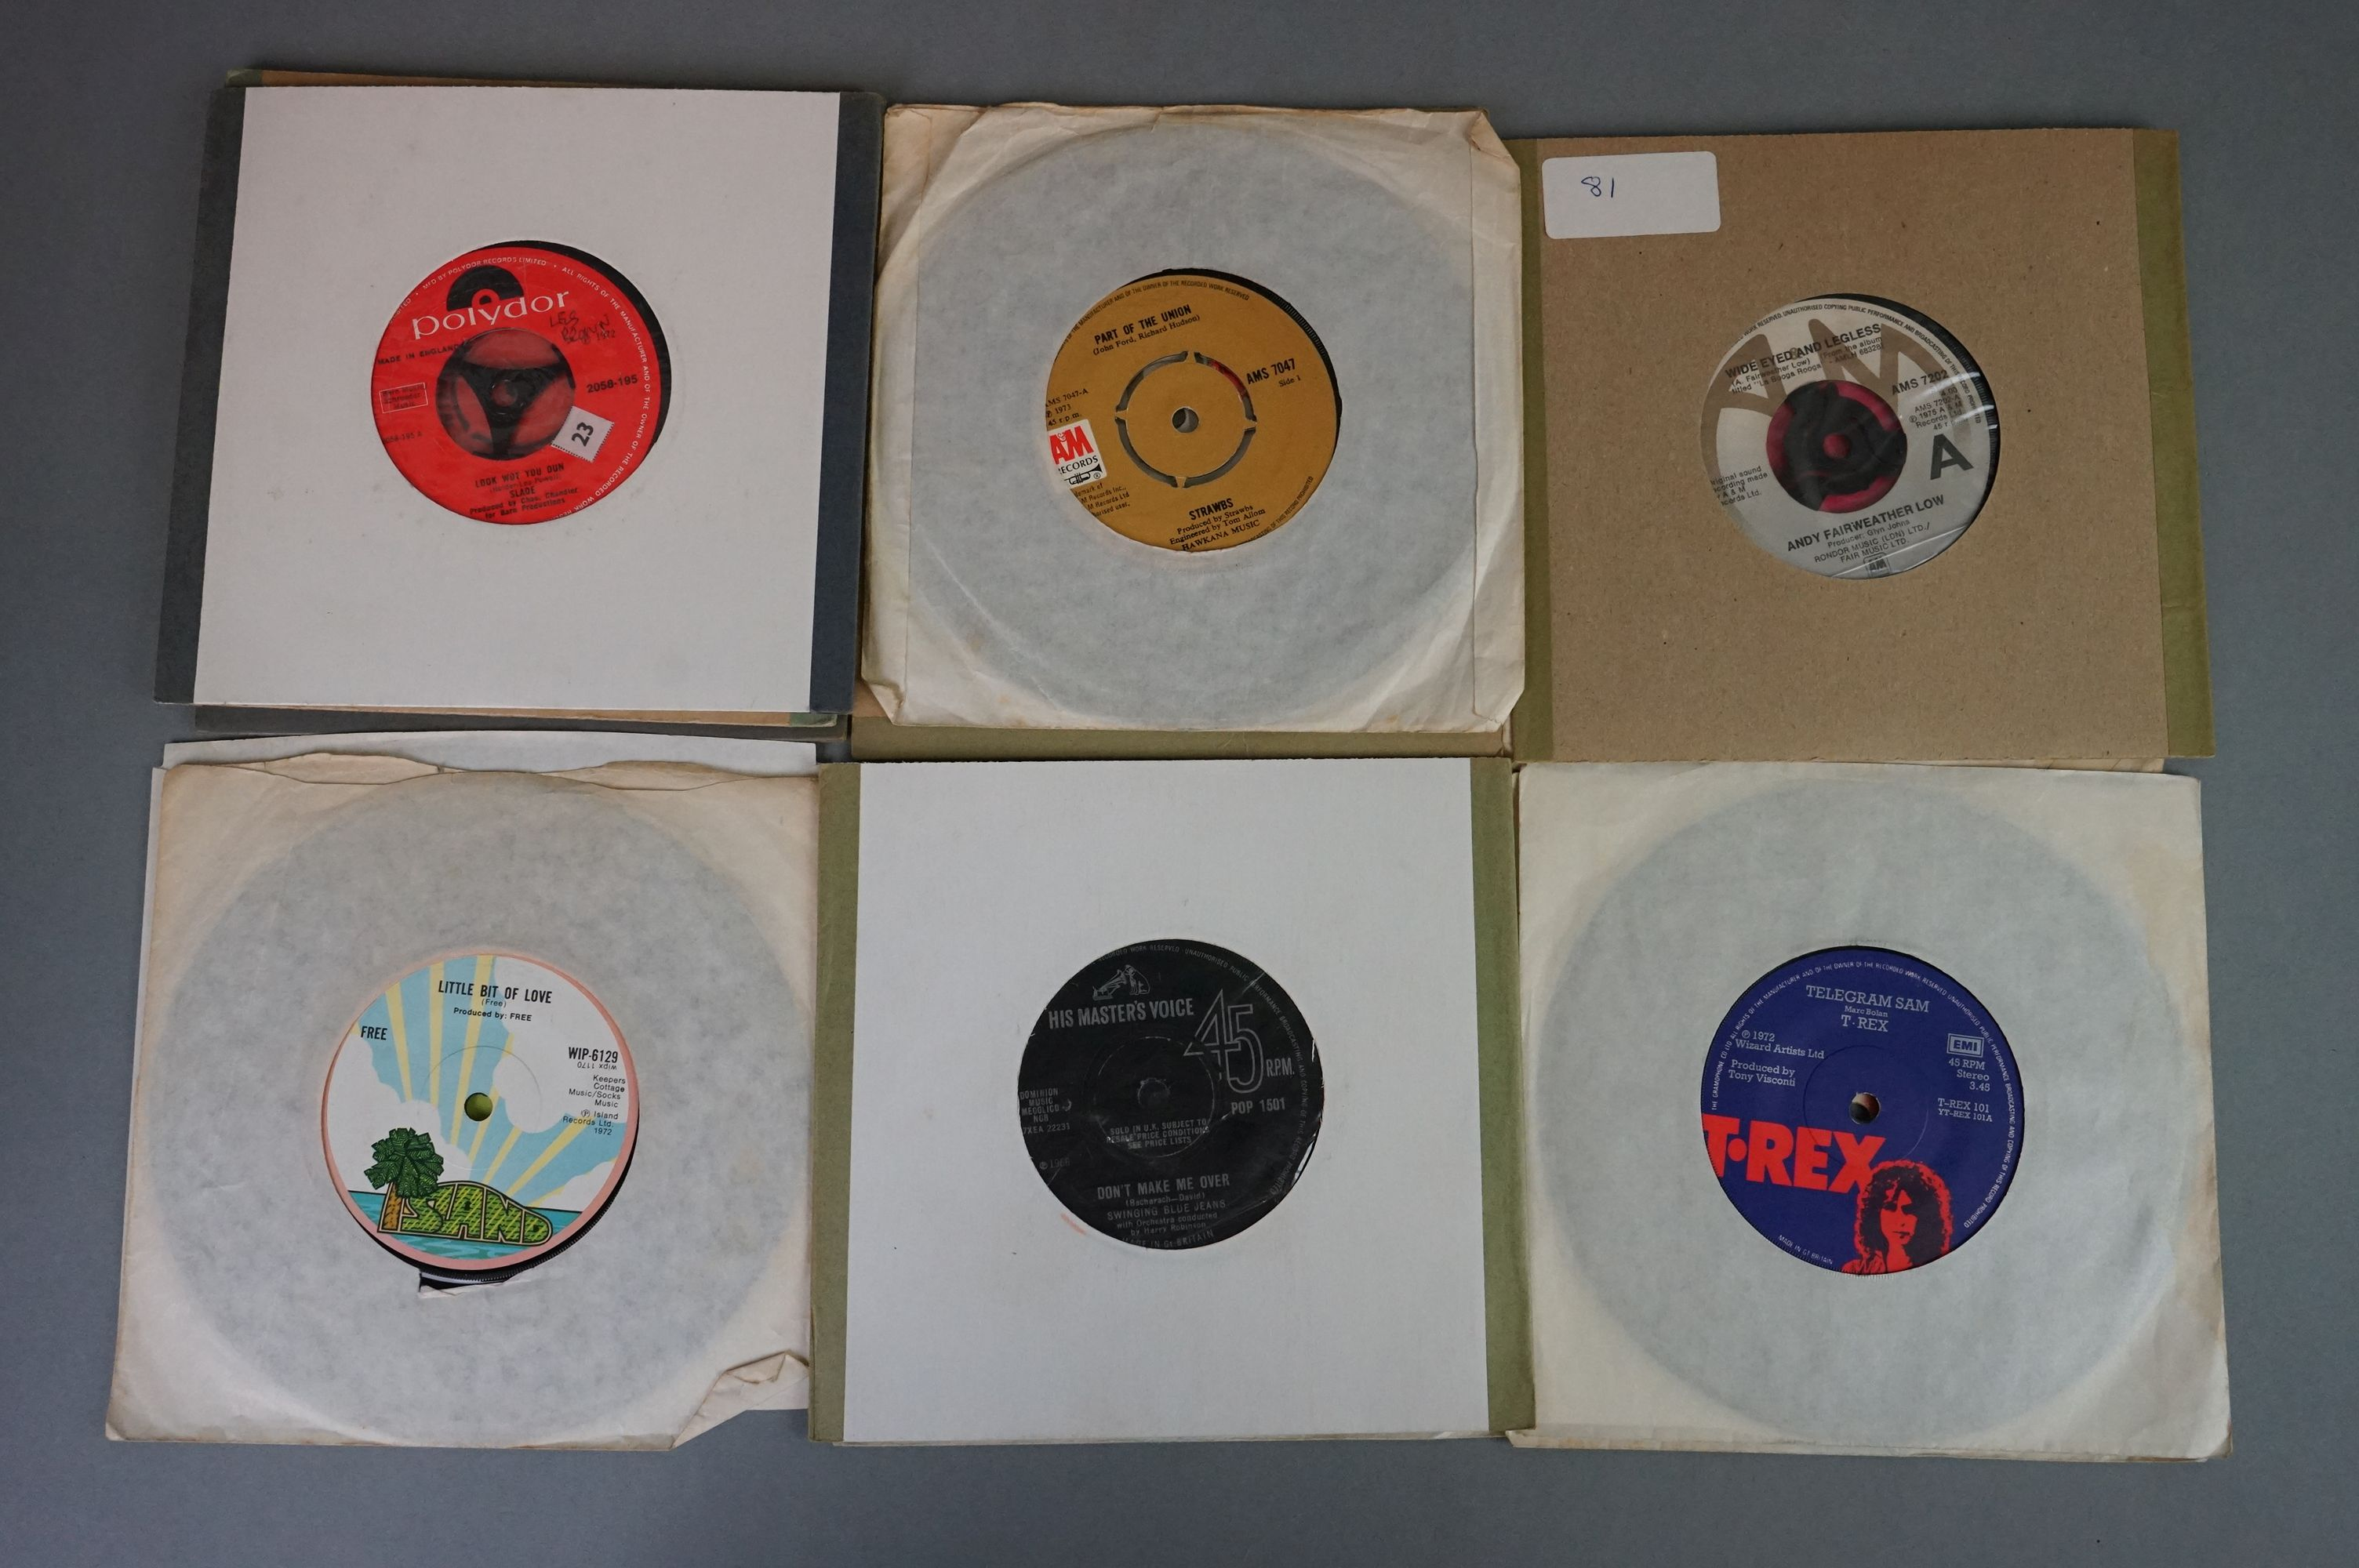 """Vinyl - 100+ 7"""" singles/EPs, mostly 1960s/1970s rock & pop, to include Rolling Stones, Beatles, Who, - Image 4 of 4"""